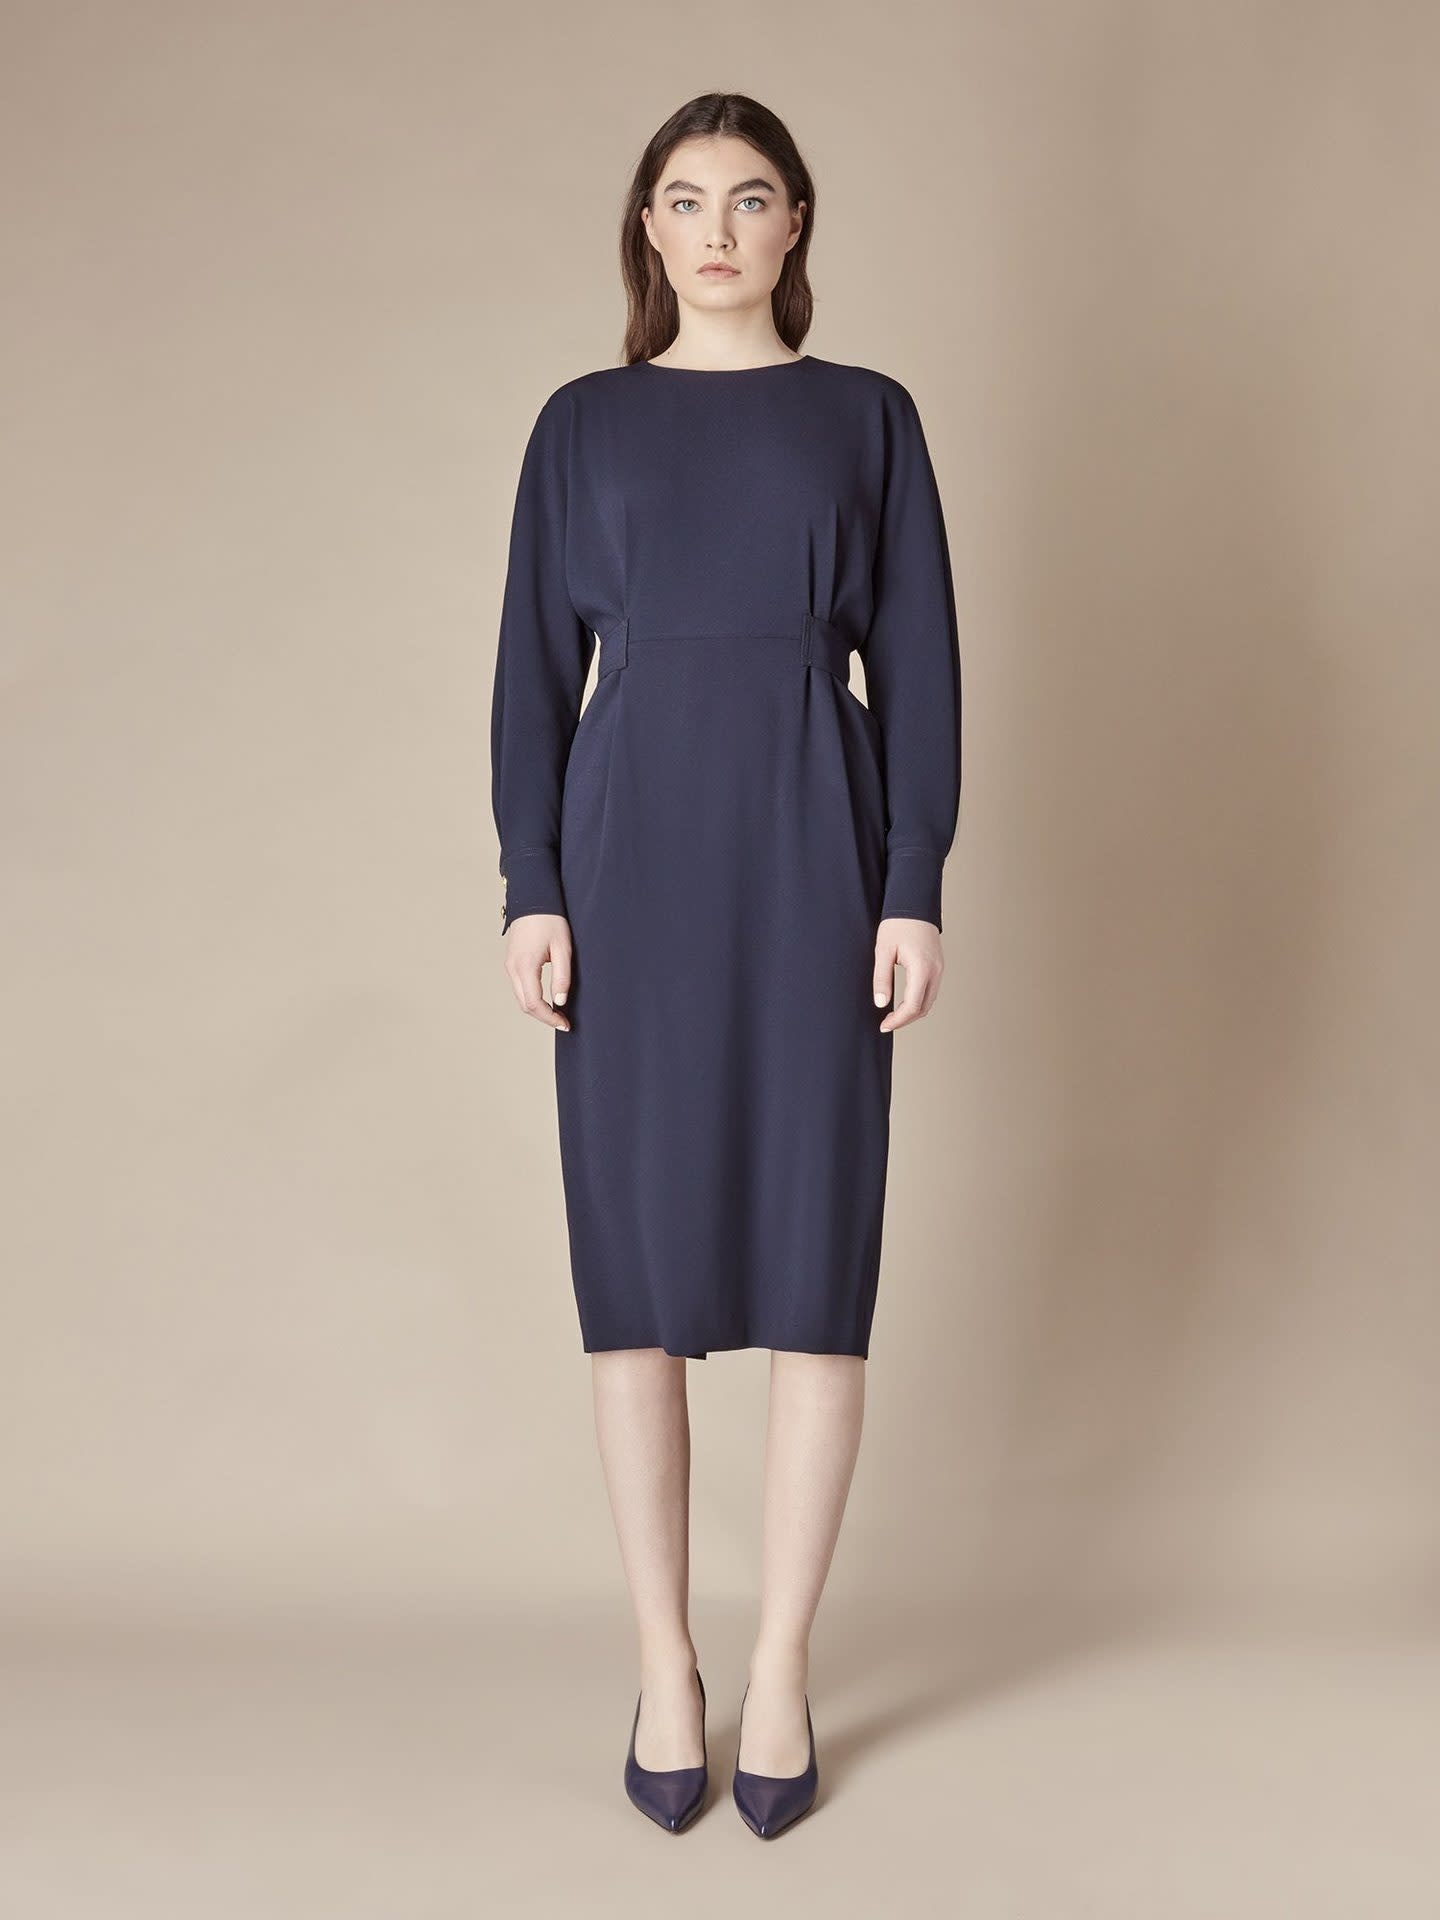 Judith & Charles Rhone Dress